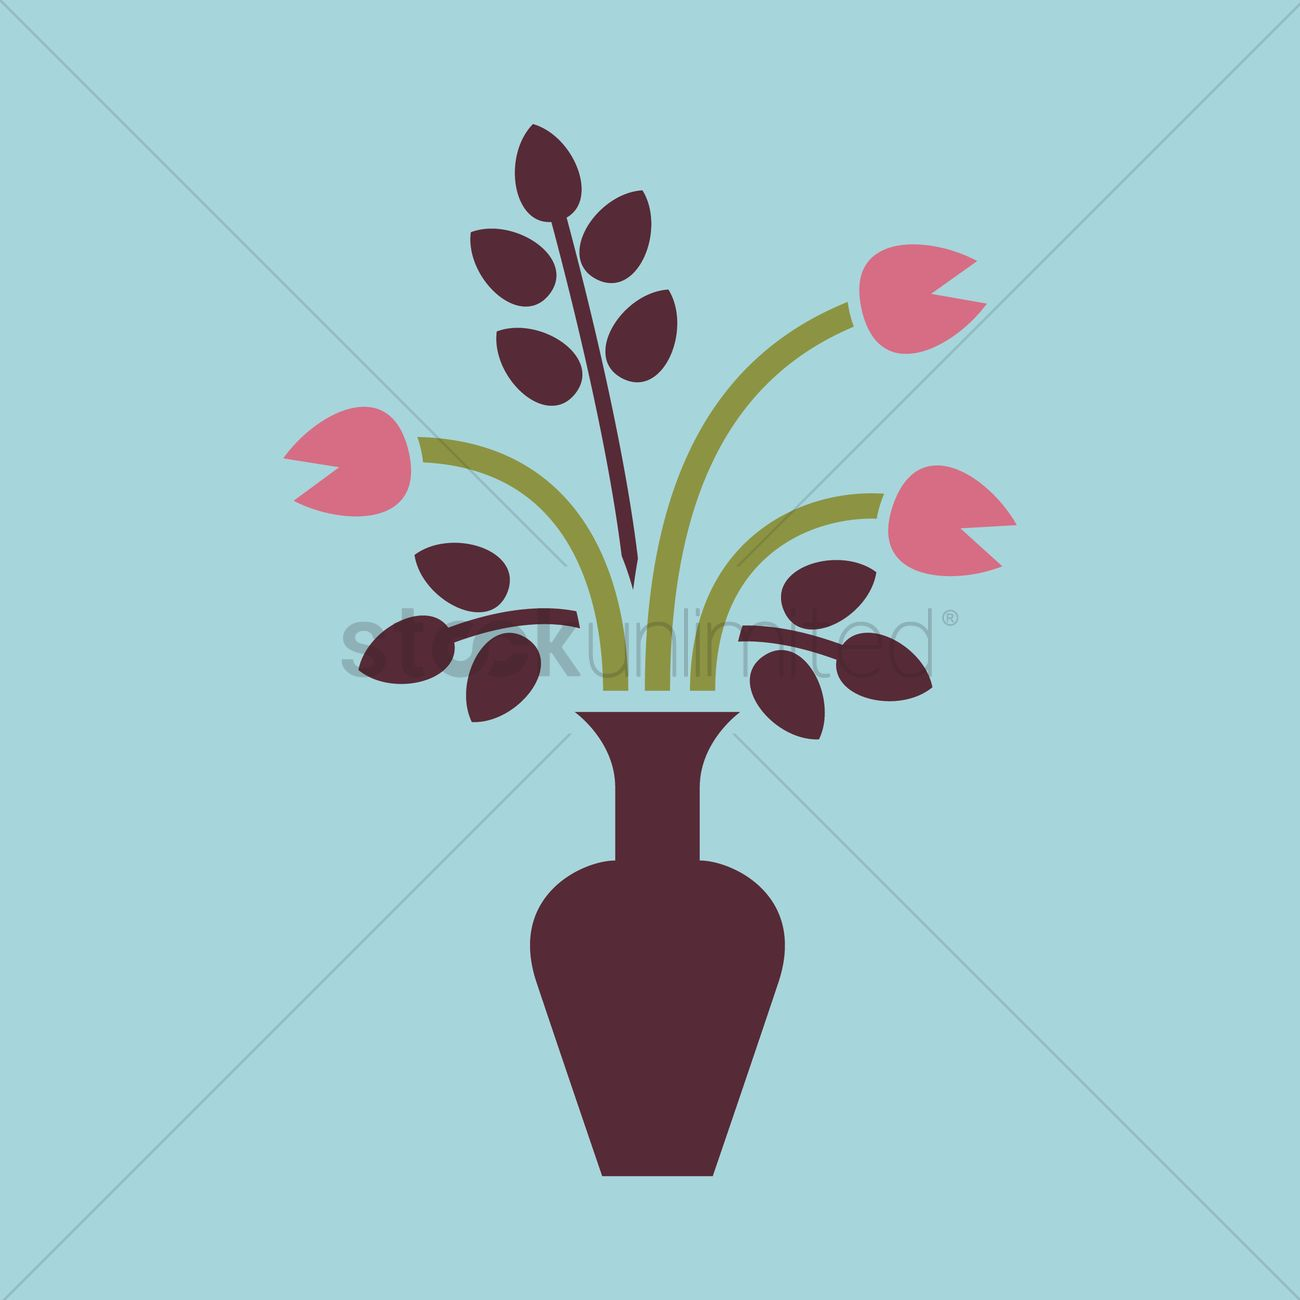 A flower vase Vector Image - 1293676 | StockUnlimited on books vector, basket vector, art vector, box vector, decor vector, candle vector, animals vector, roses vector, floral vector, pottery vector, mirror vector, beer mug vector, teapot vector,